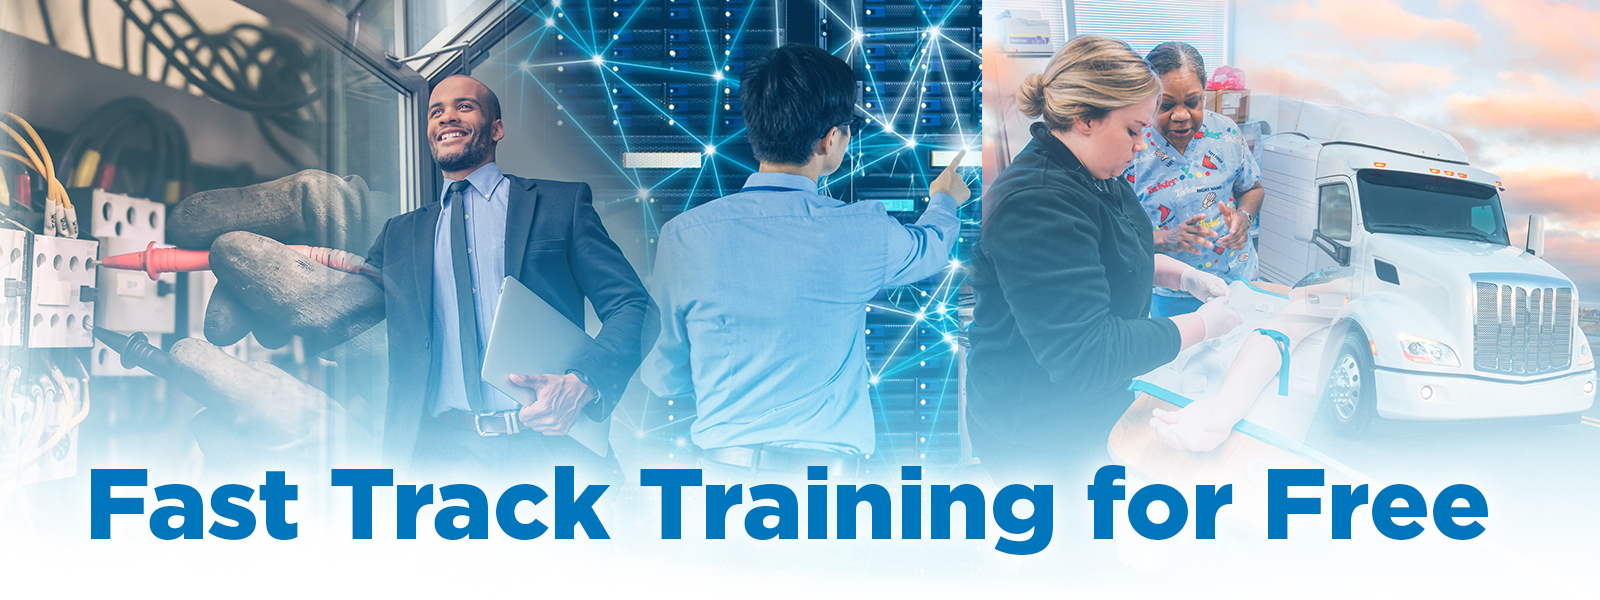 Fast track Training for free